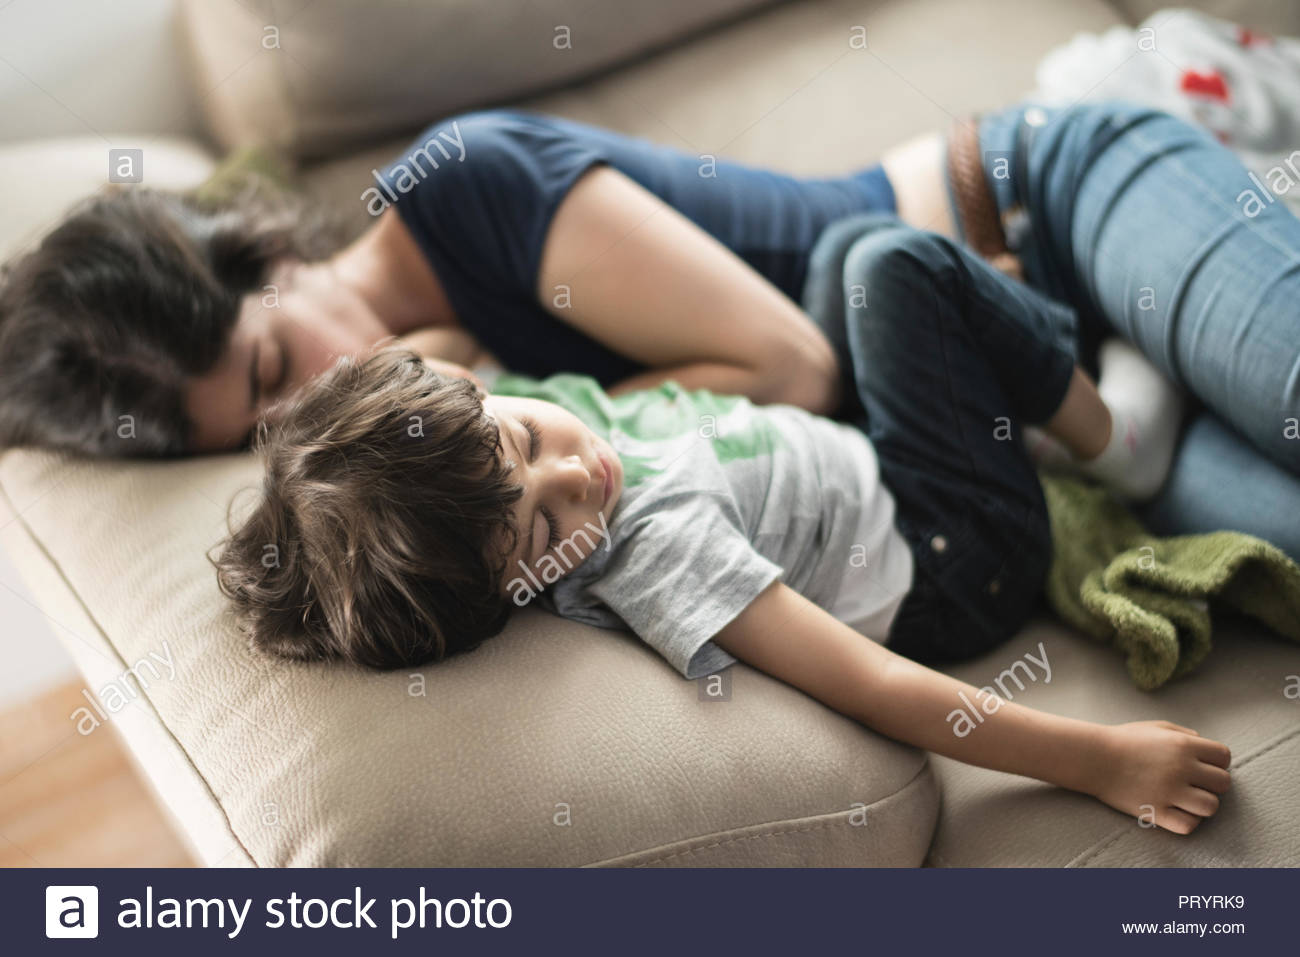 Mother and son taking a nap on couch - Stock Image